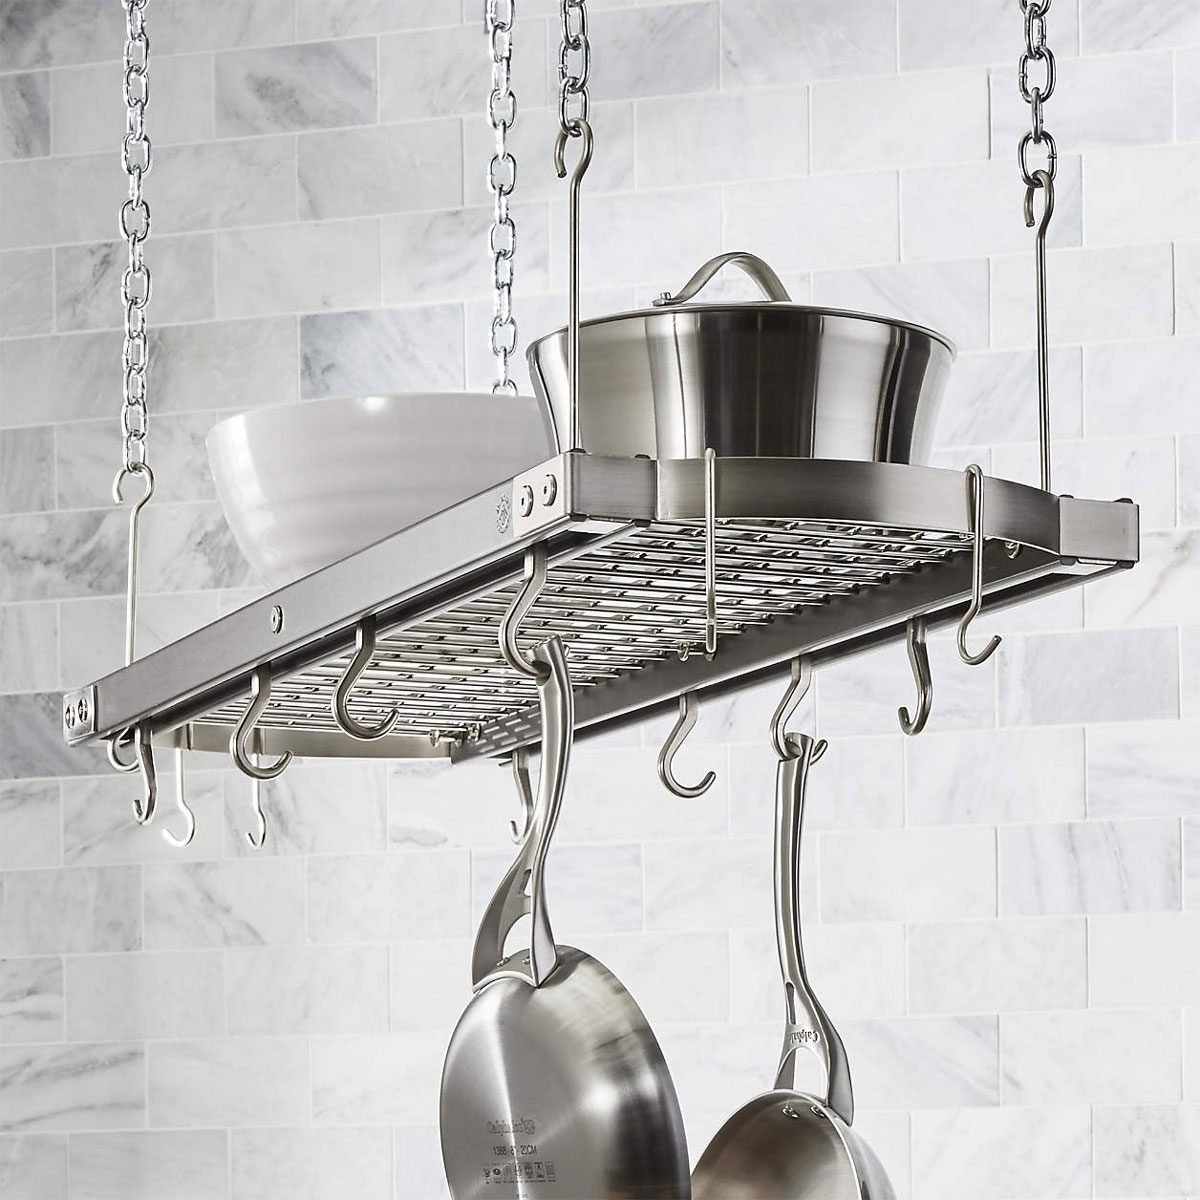 Pot Rack J.k. Adams Large Grey Ceiling Pot Rack